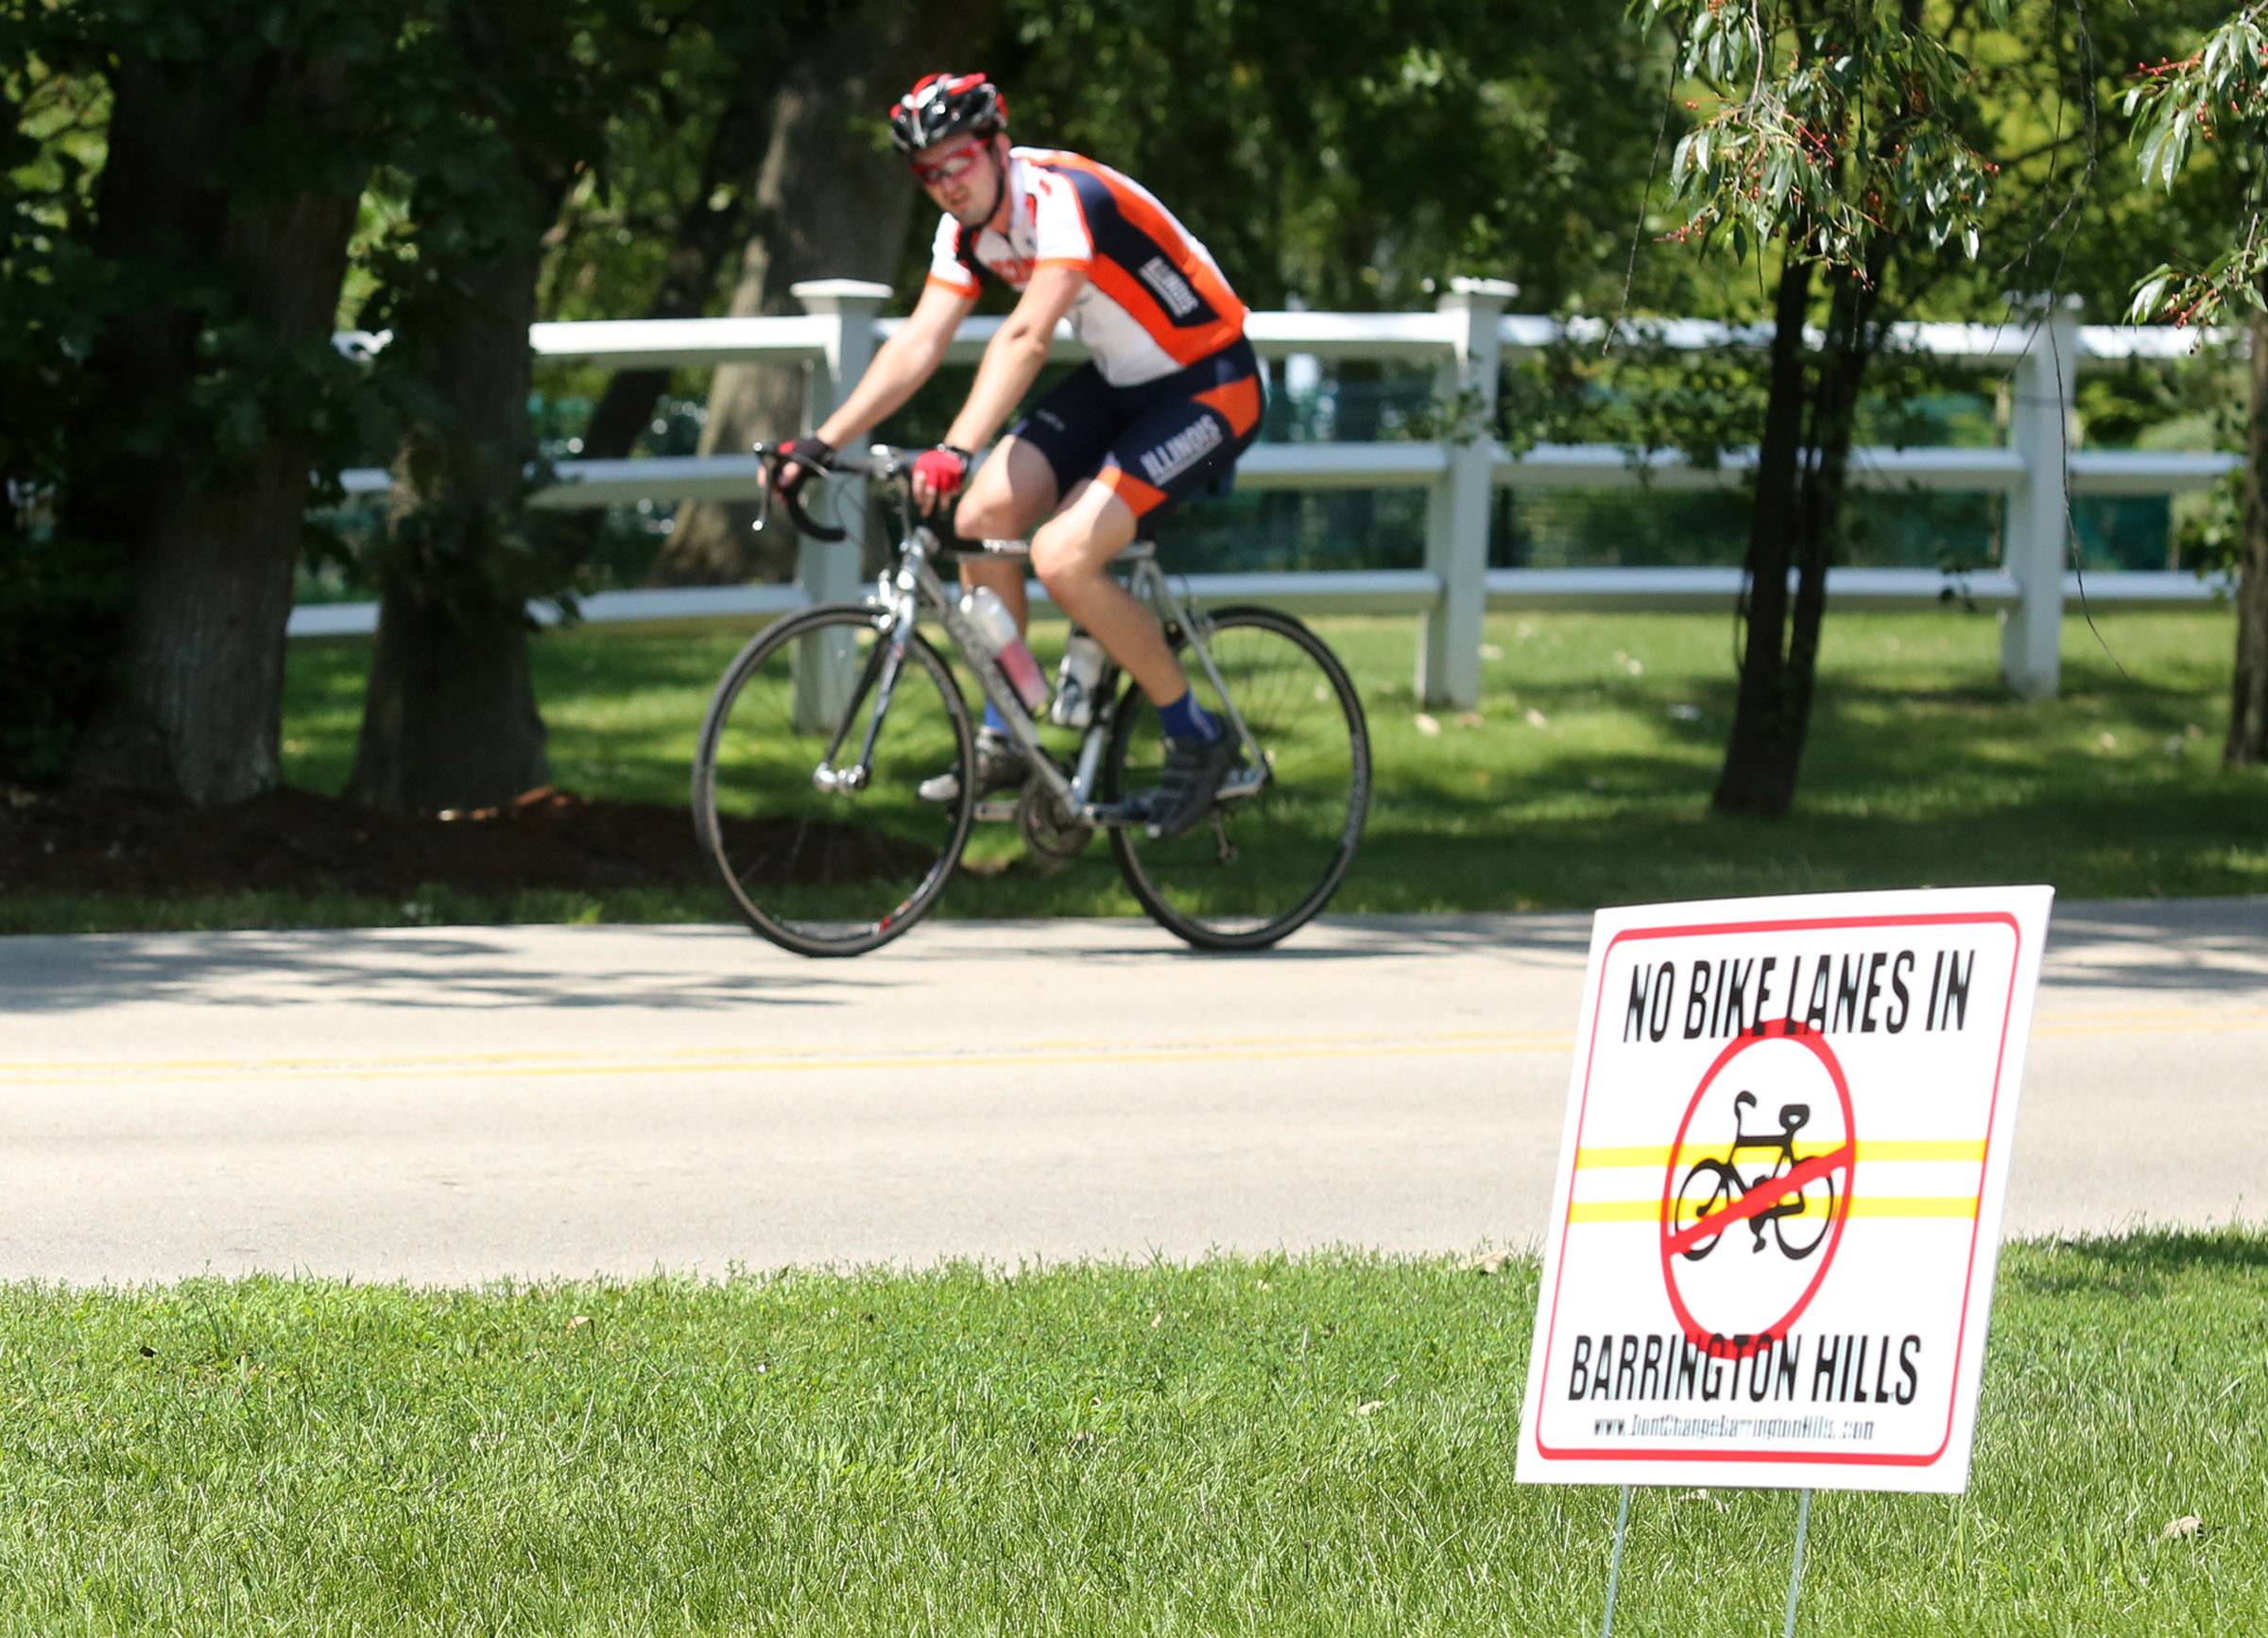 Barrington Hills board shows opposition to bike lanes